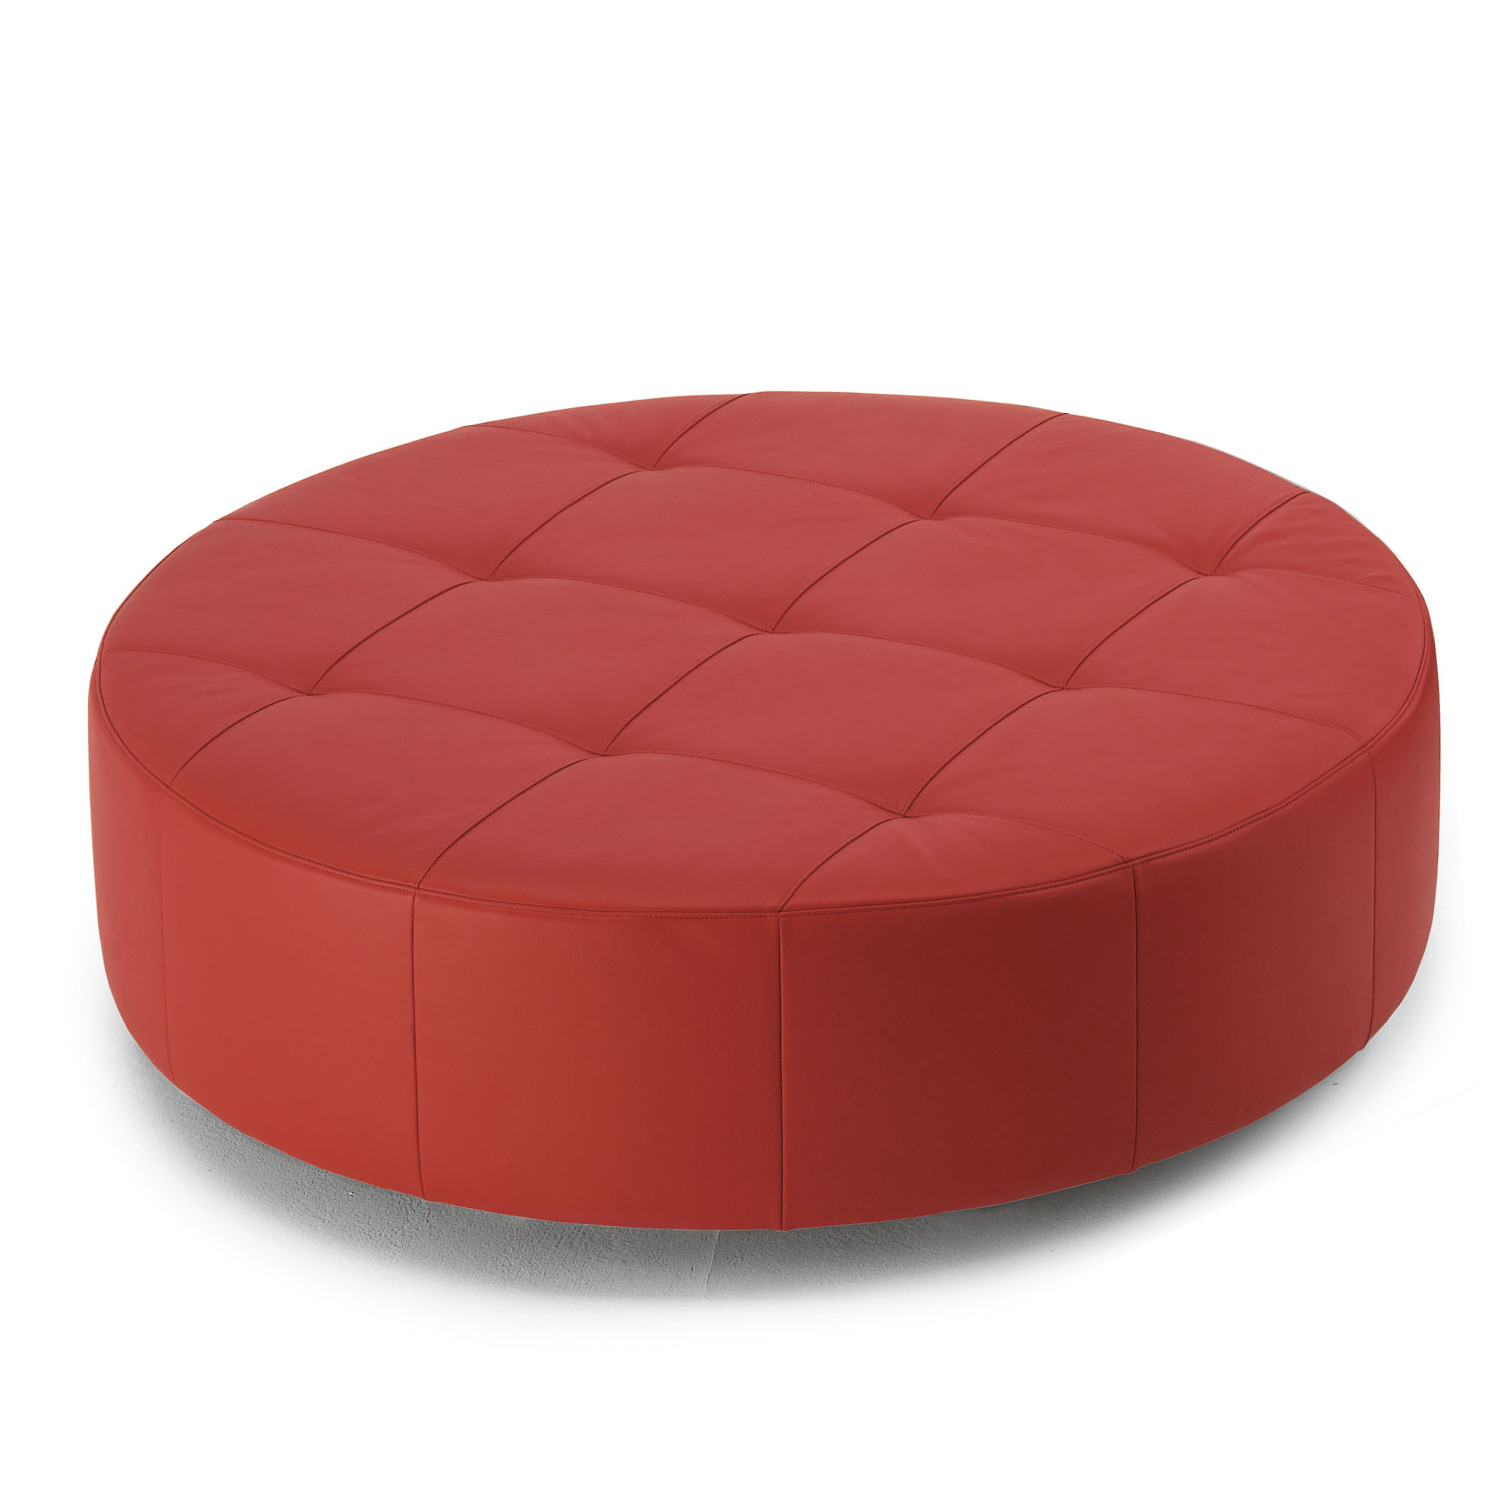 cubo poufs contemporary furniture apres furniture. Black Bedroom Furniture Sets. Home Design Ideas